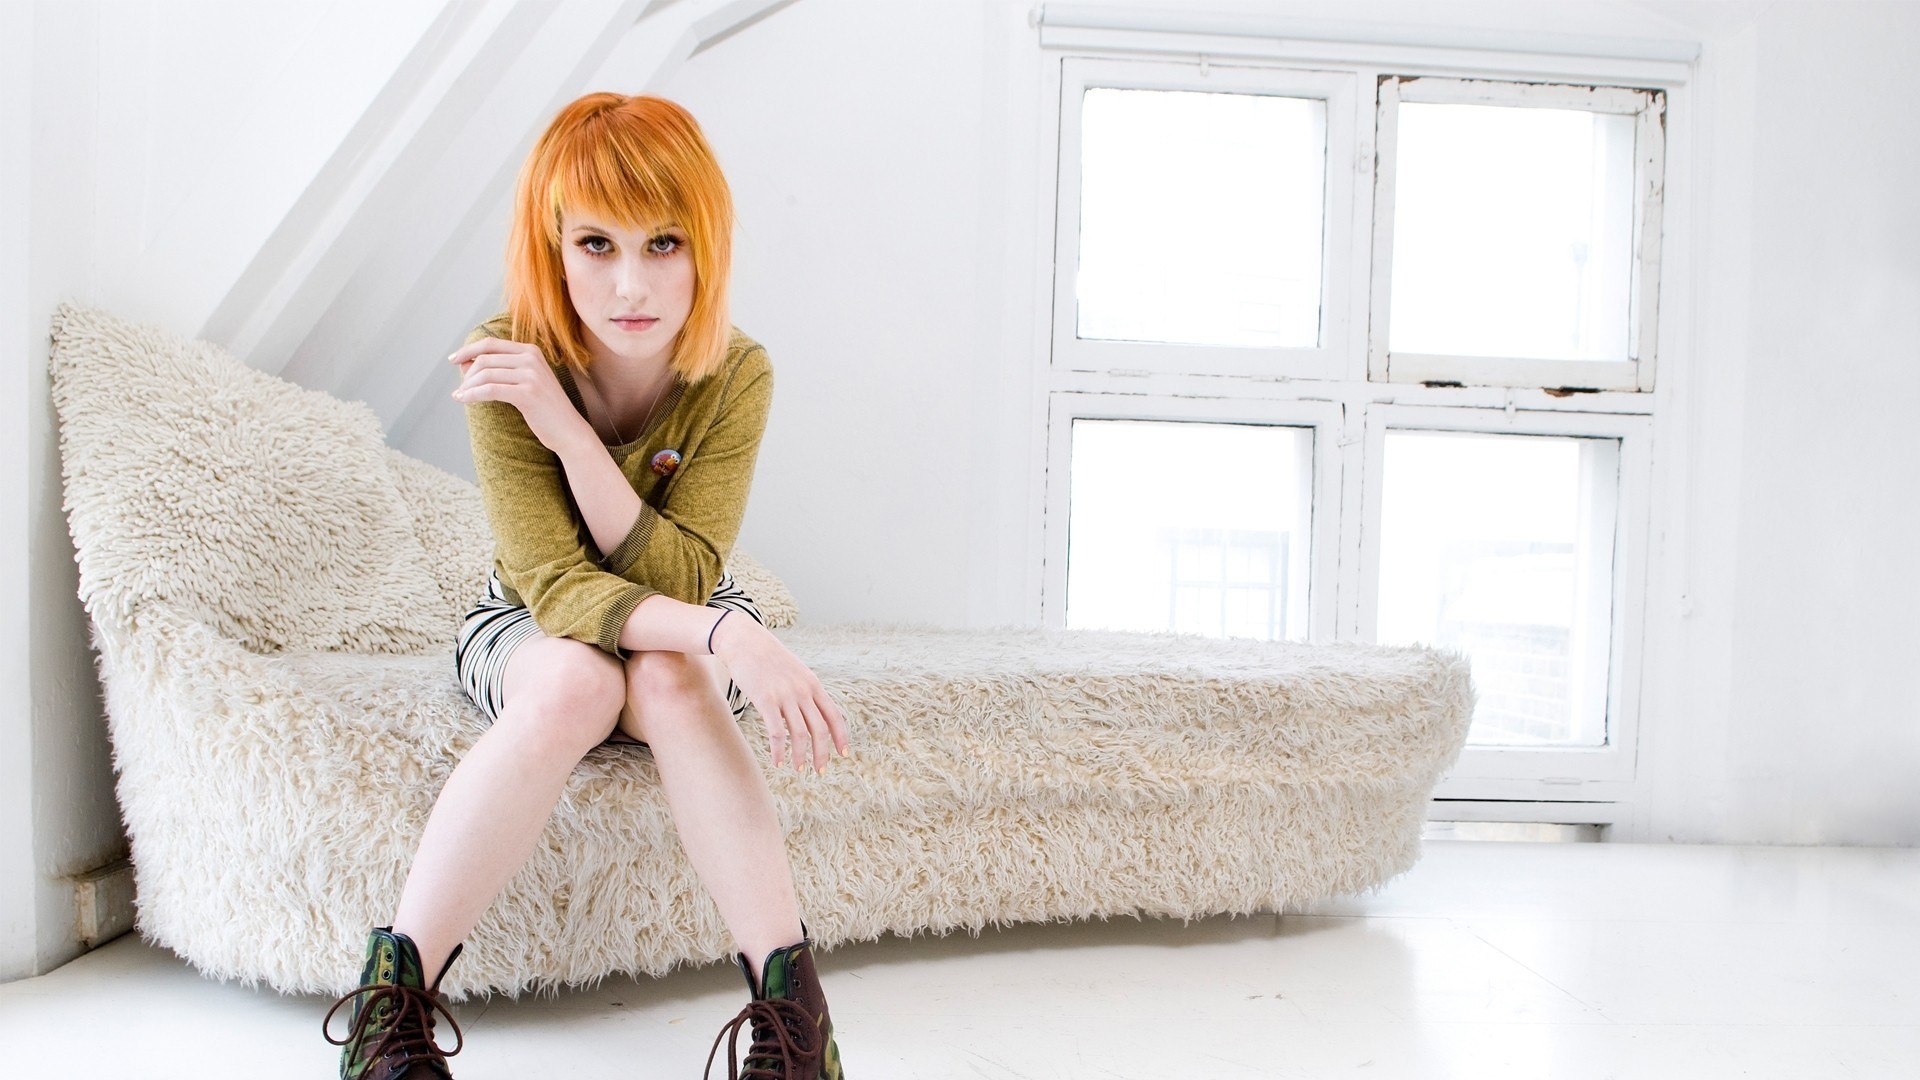 hayley williams legs woman HD Wallpaper